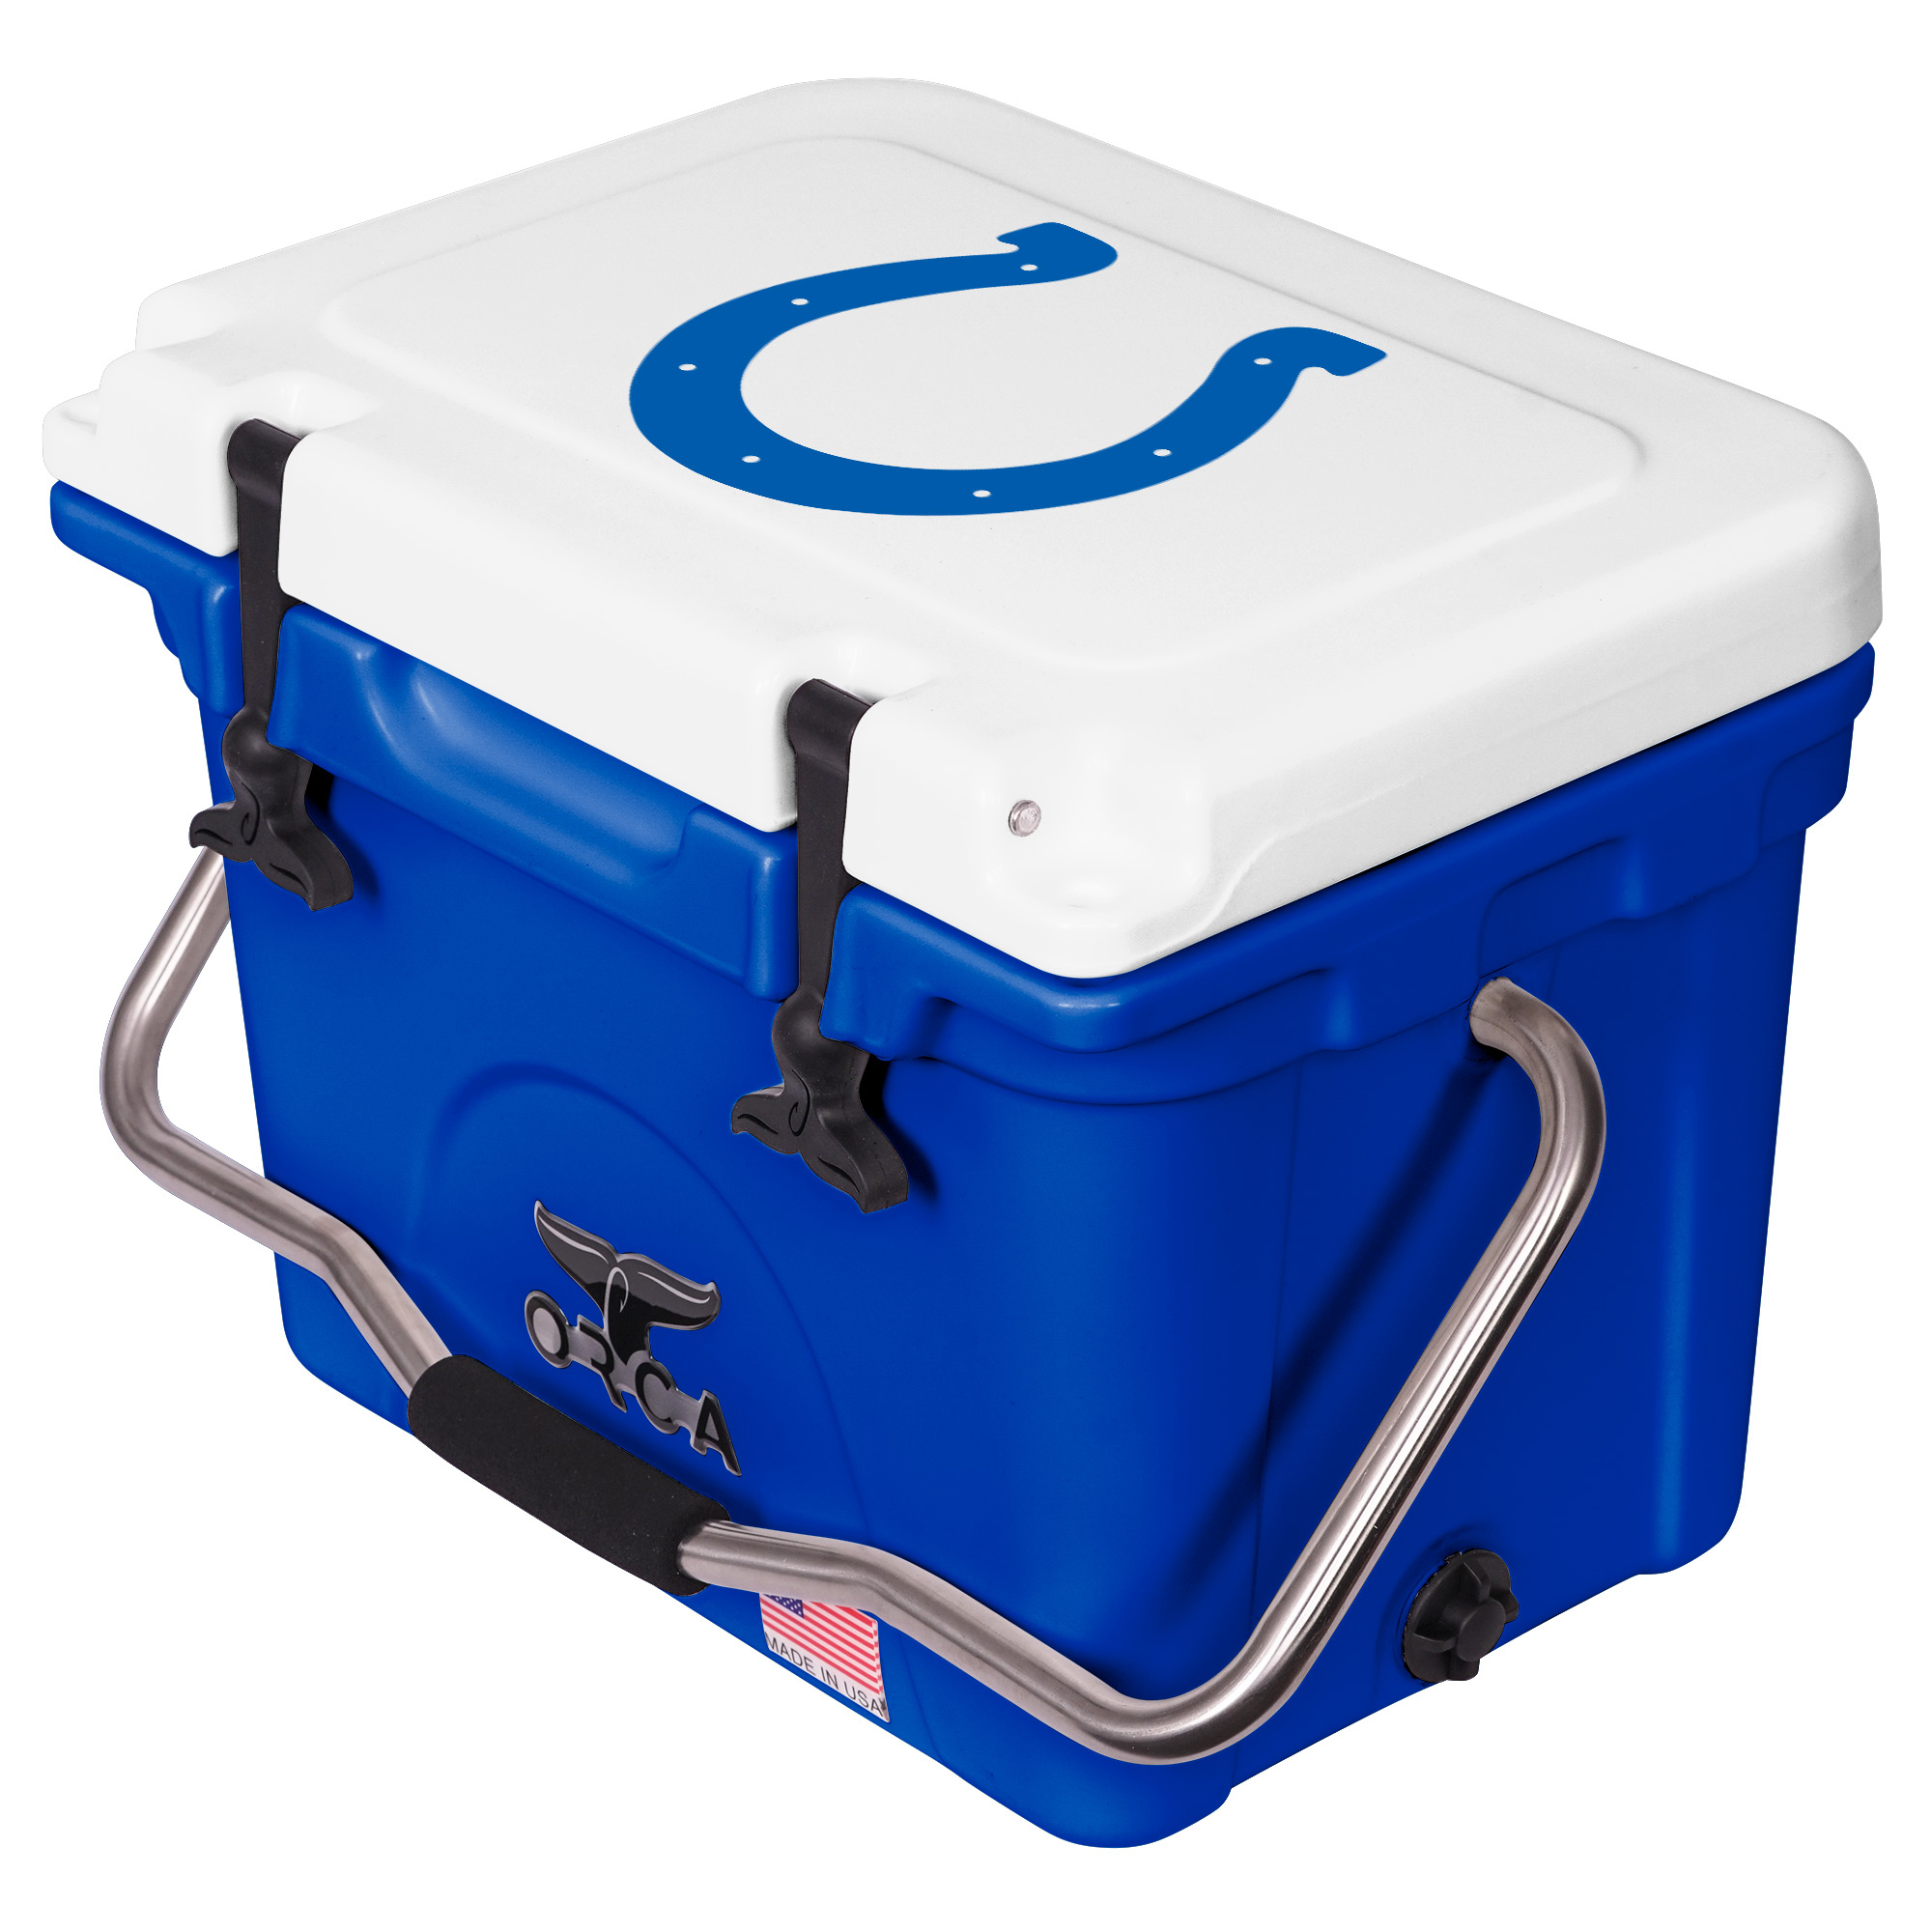 Indianapolis Colts ORCA 20-Quart Hard-Sided Cooler - Blue/White - No Size